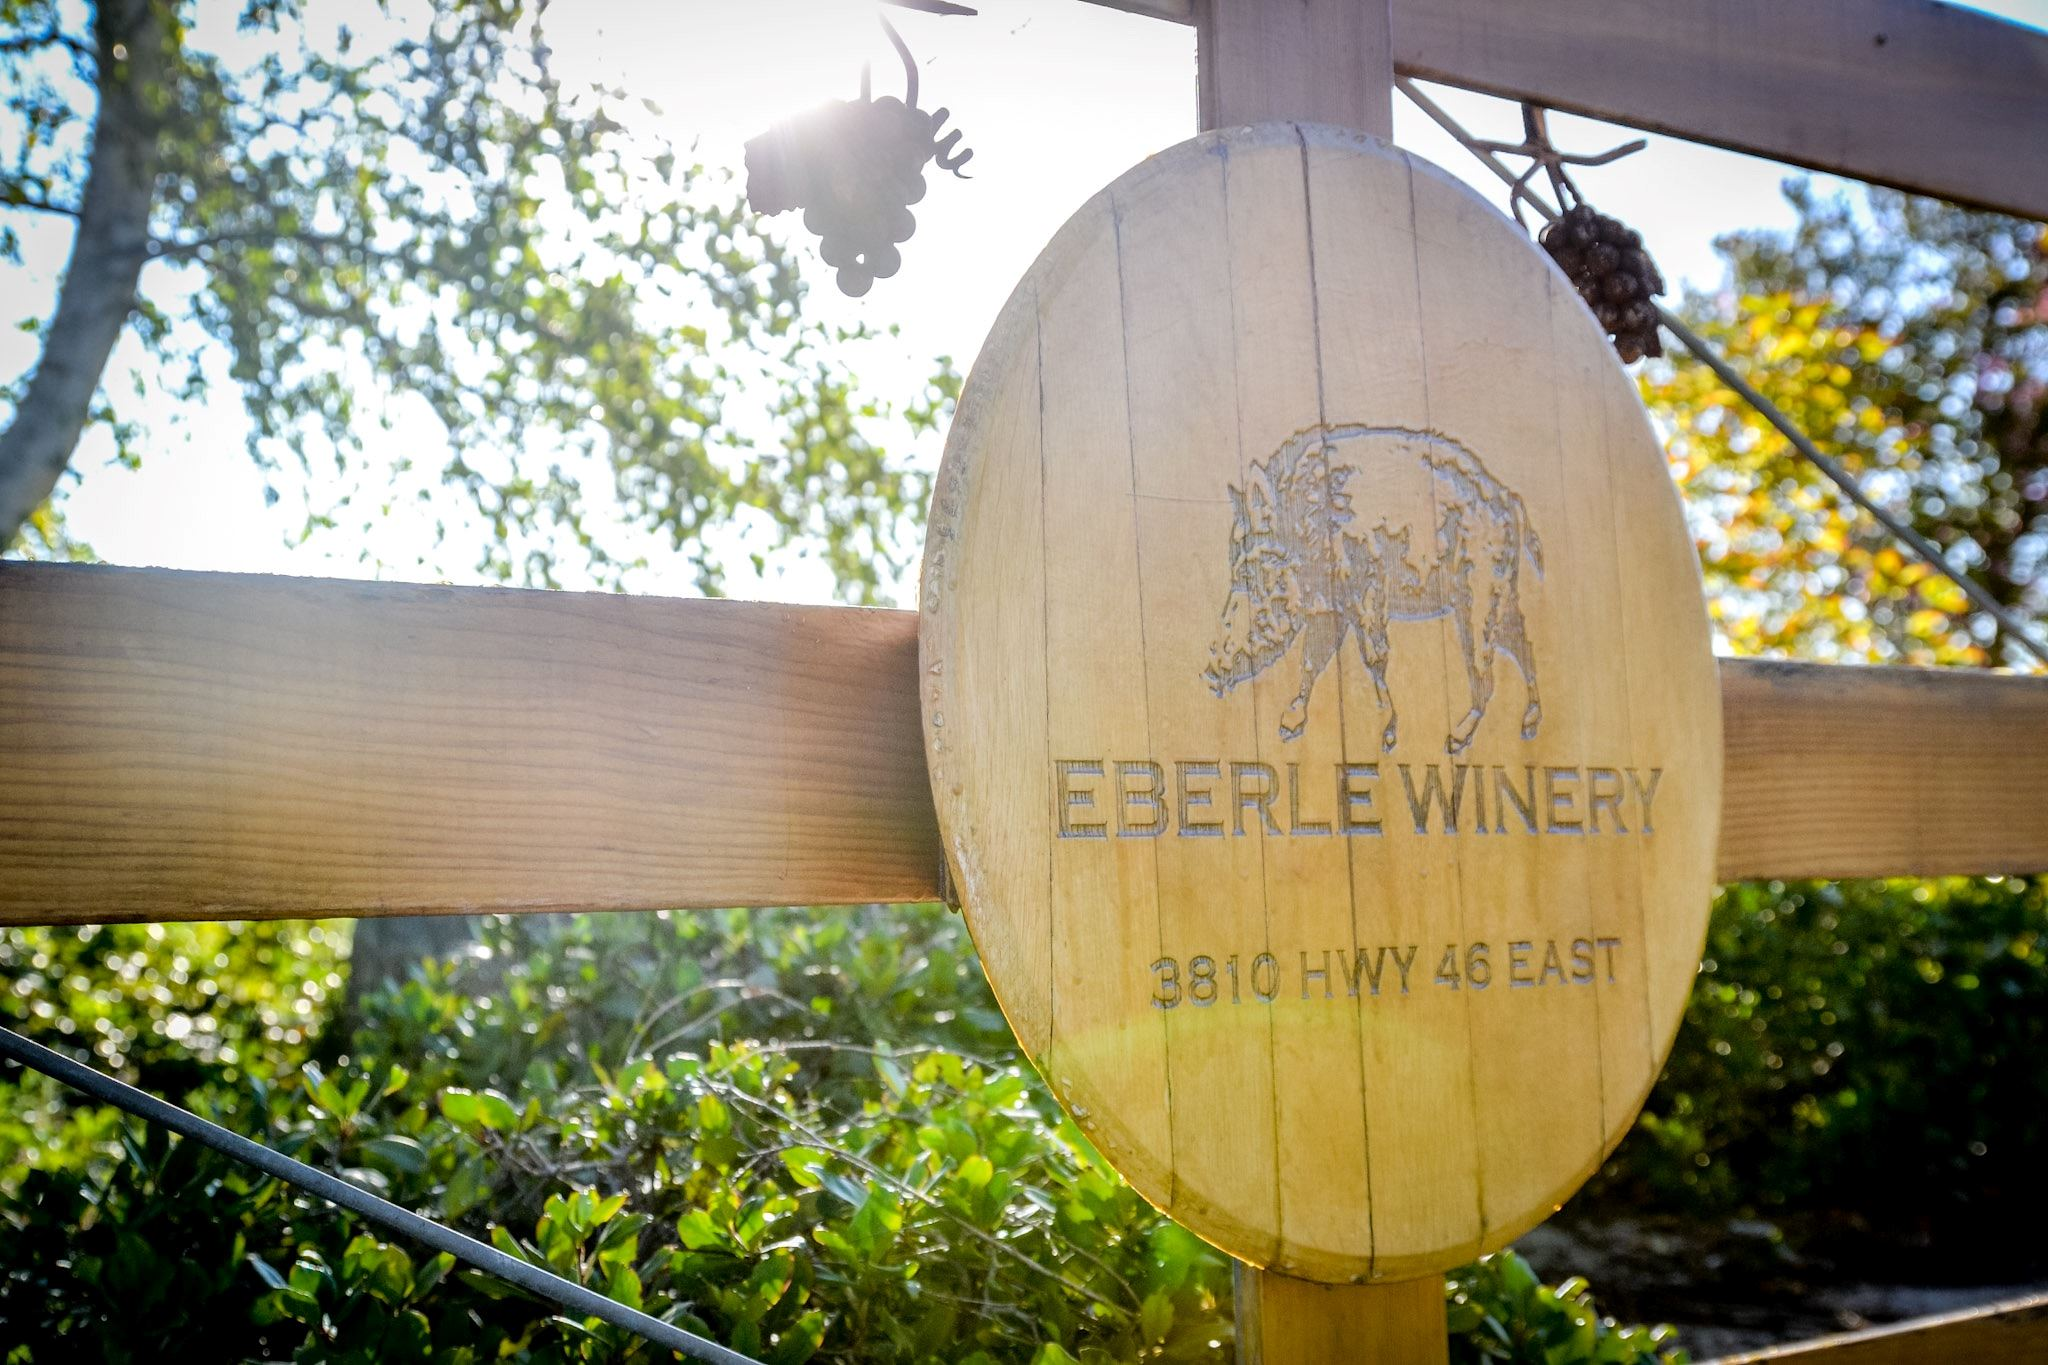 Eberle Winery - 2